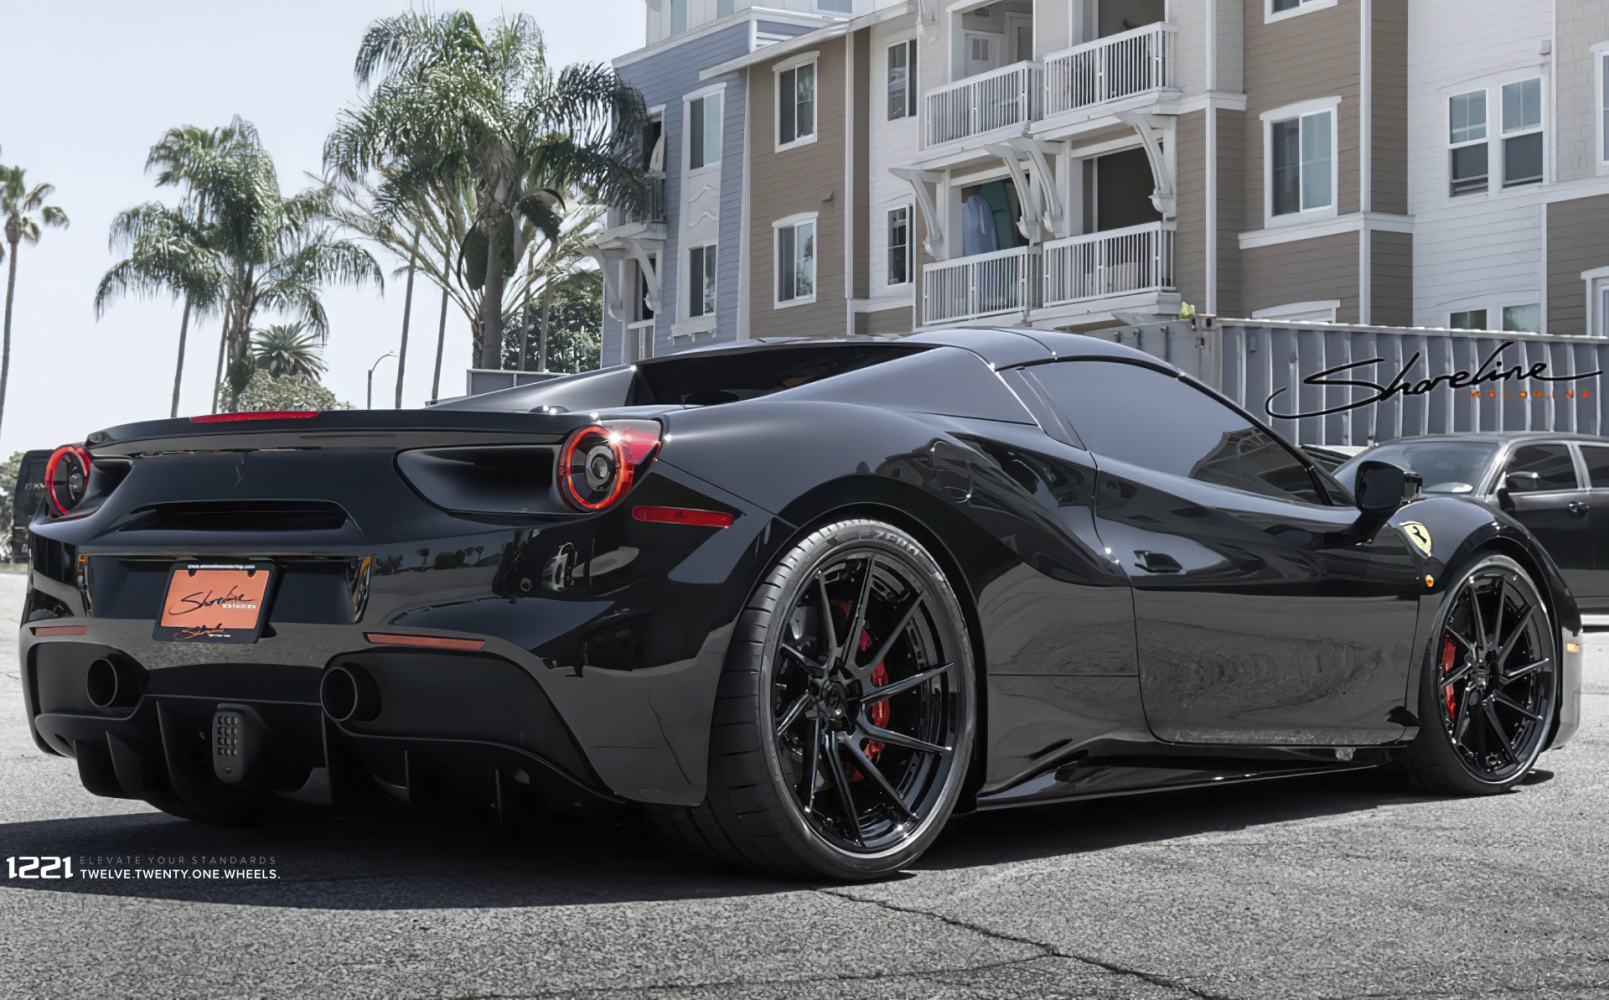 Ferrari 488 Spyder Rotational Forged Wheels